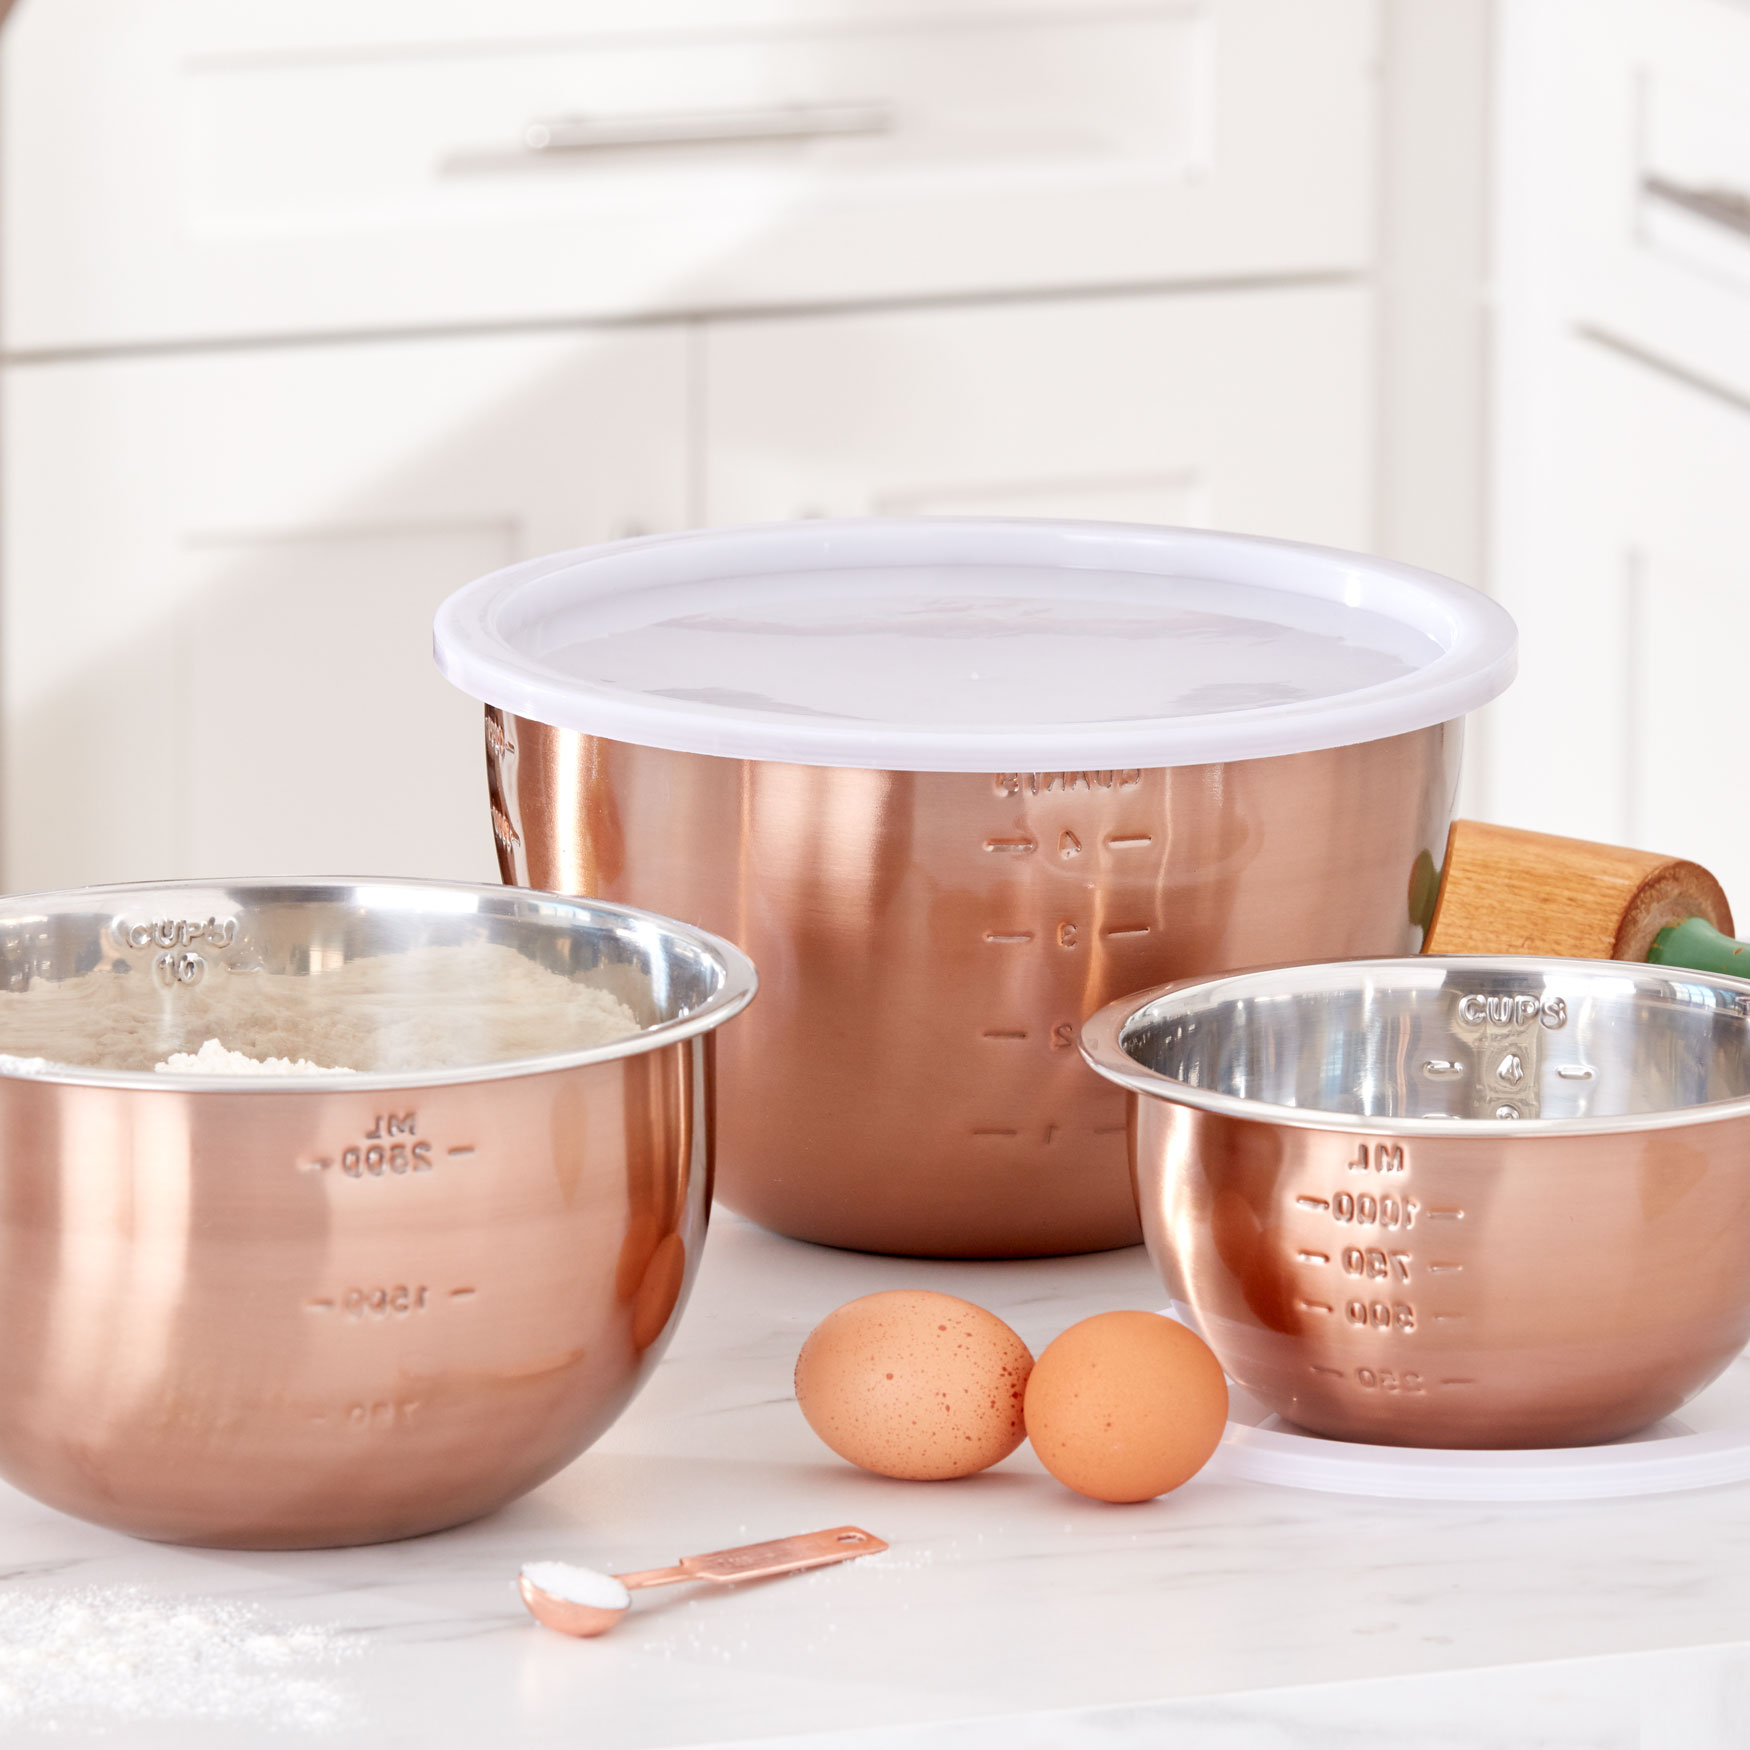 6-Pc. Set of Copper Mixing Bowls & Lids, COPPER